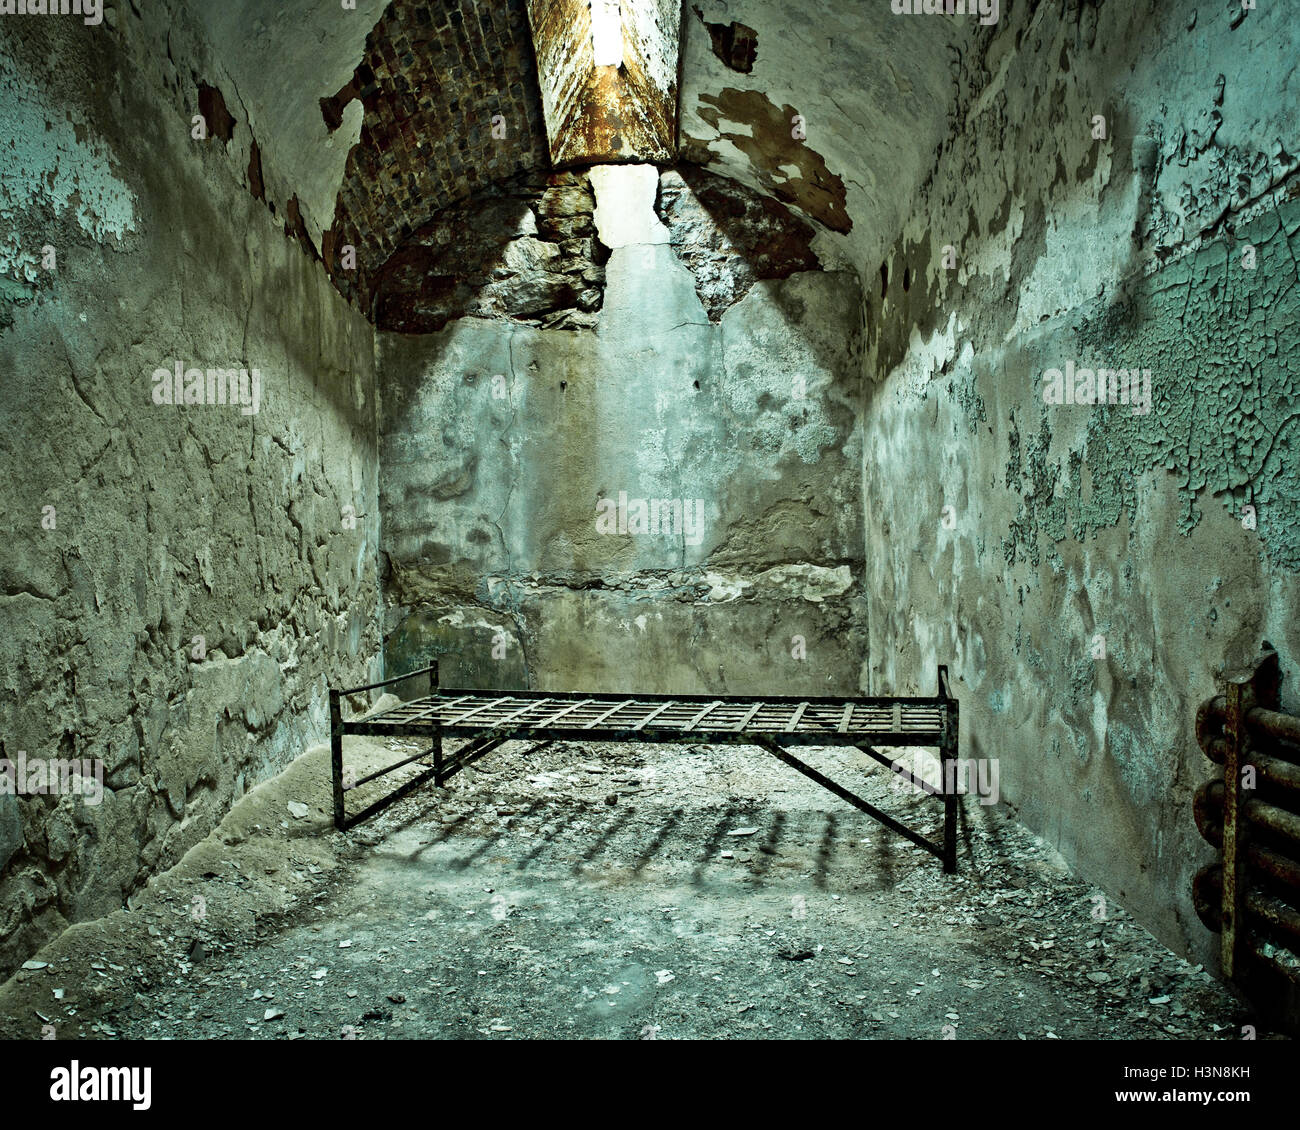 Crumbling abandoned prison cell with cot - Stock Image